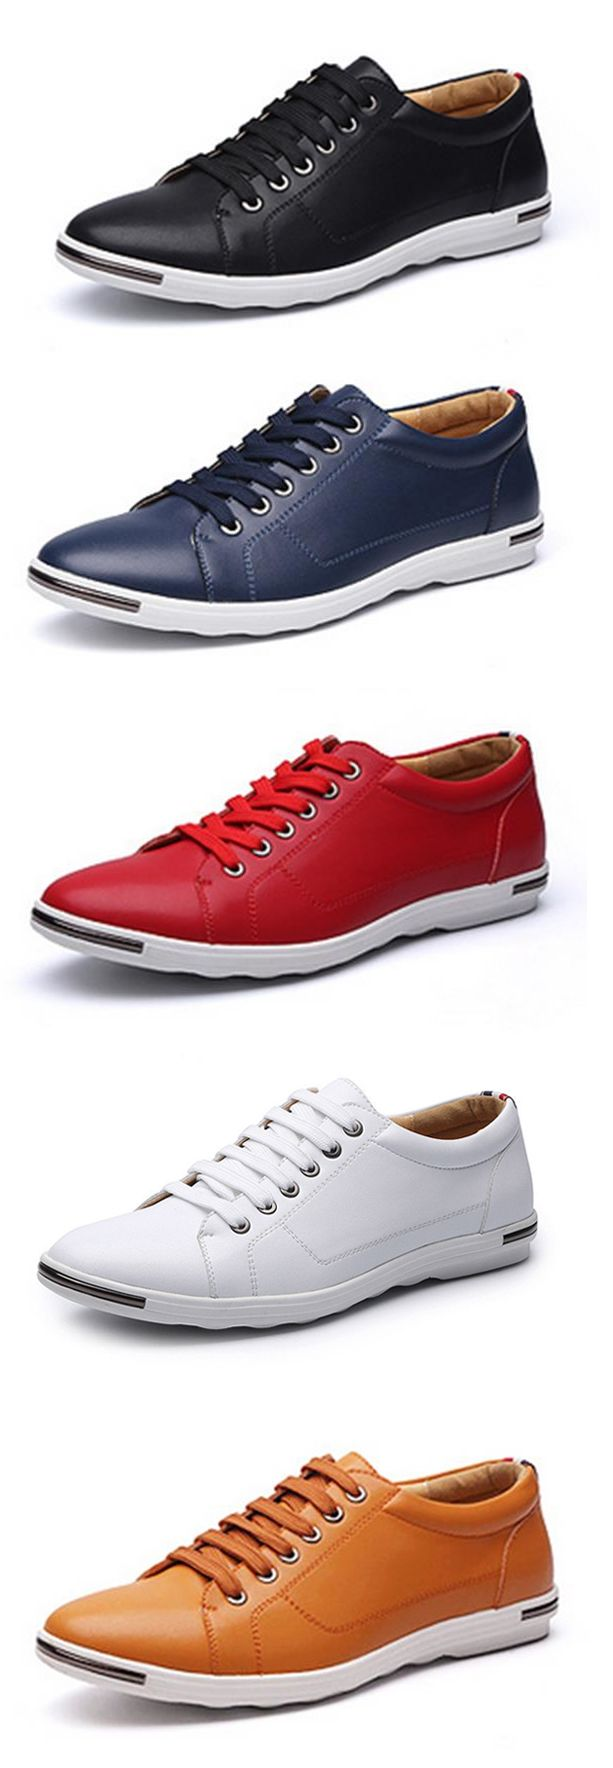 Big Size Men's Fashion Comfortable Outdoor Lace Up Casual Flat Shoes